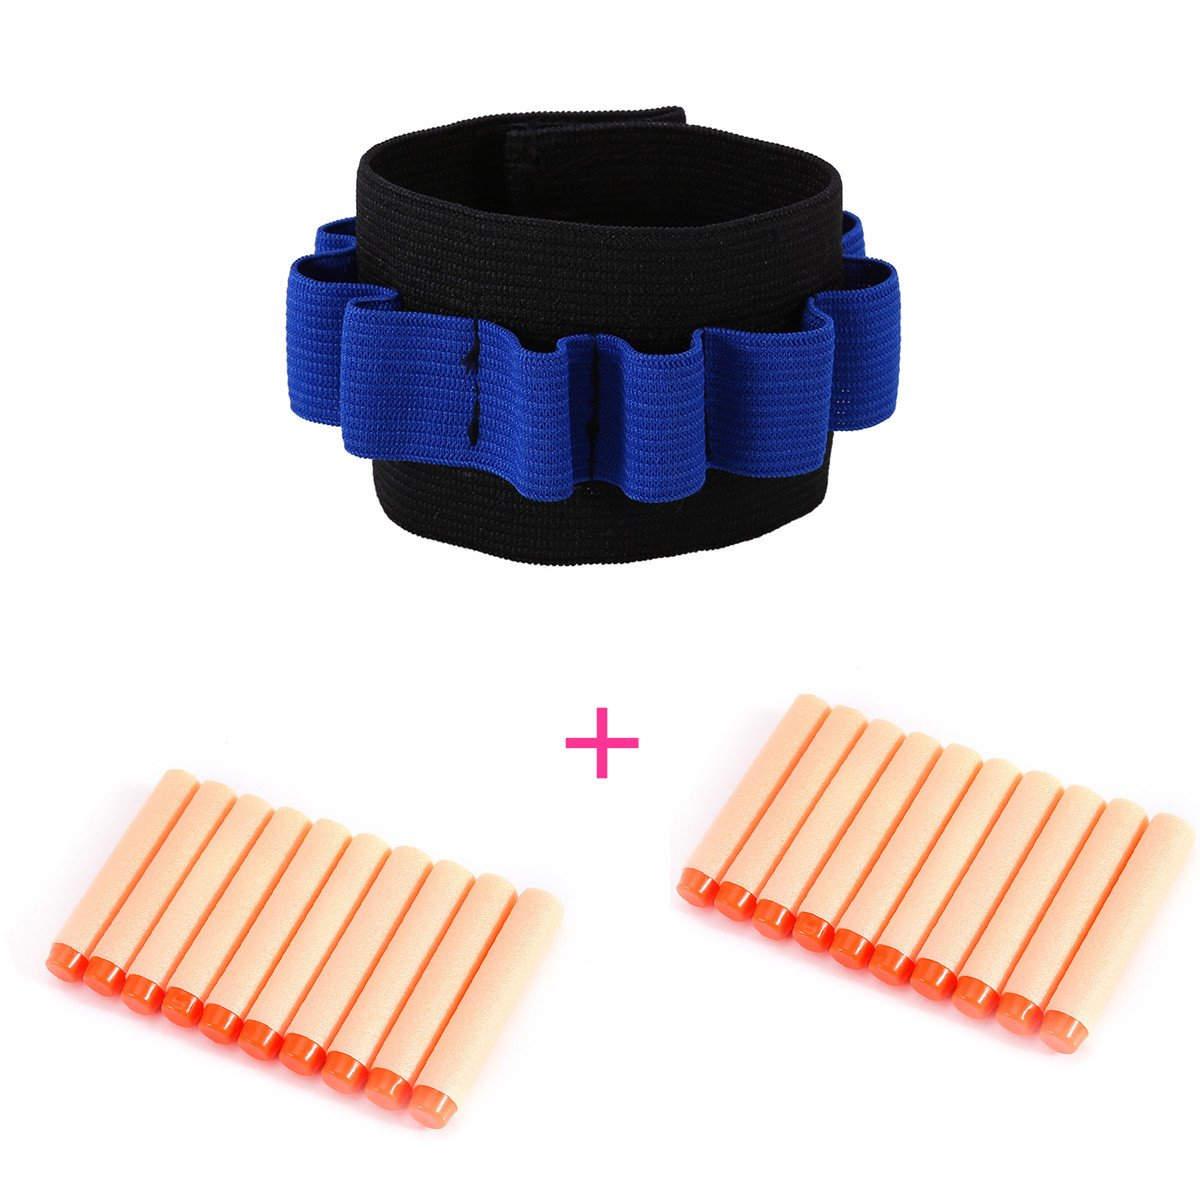 Kids Elite Tactical Bullet Dart Ammo Storage Wrister Wrist Belt Band Strap+ 100pcs 7.2cm Elite Tactical Orange Refill Soft Foam Bullet Darts for Nerf N-strike Elite Series Blasters Toy Gun